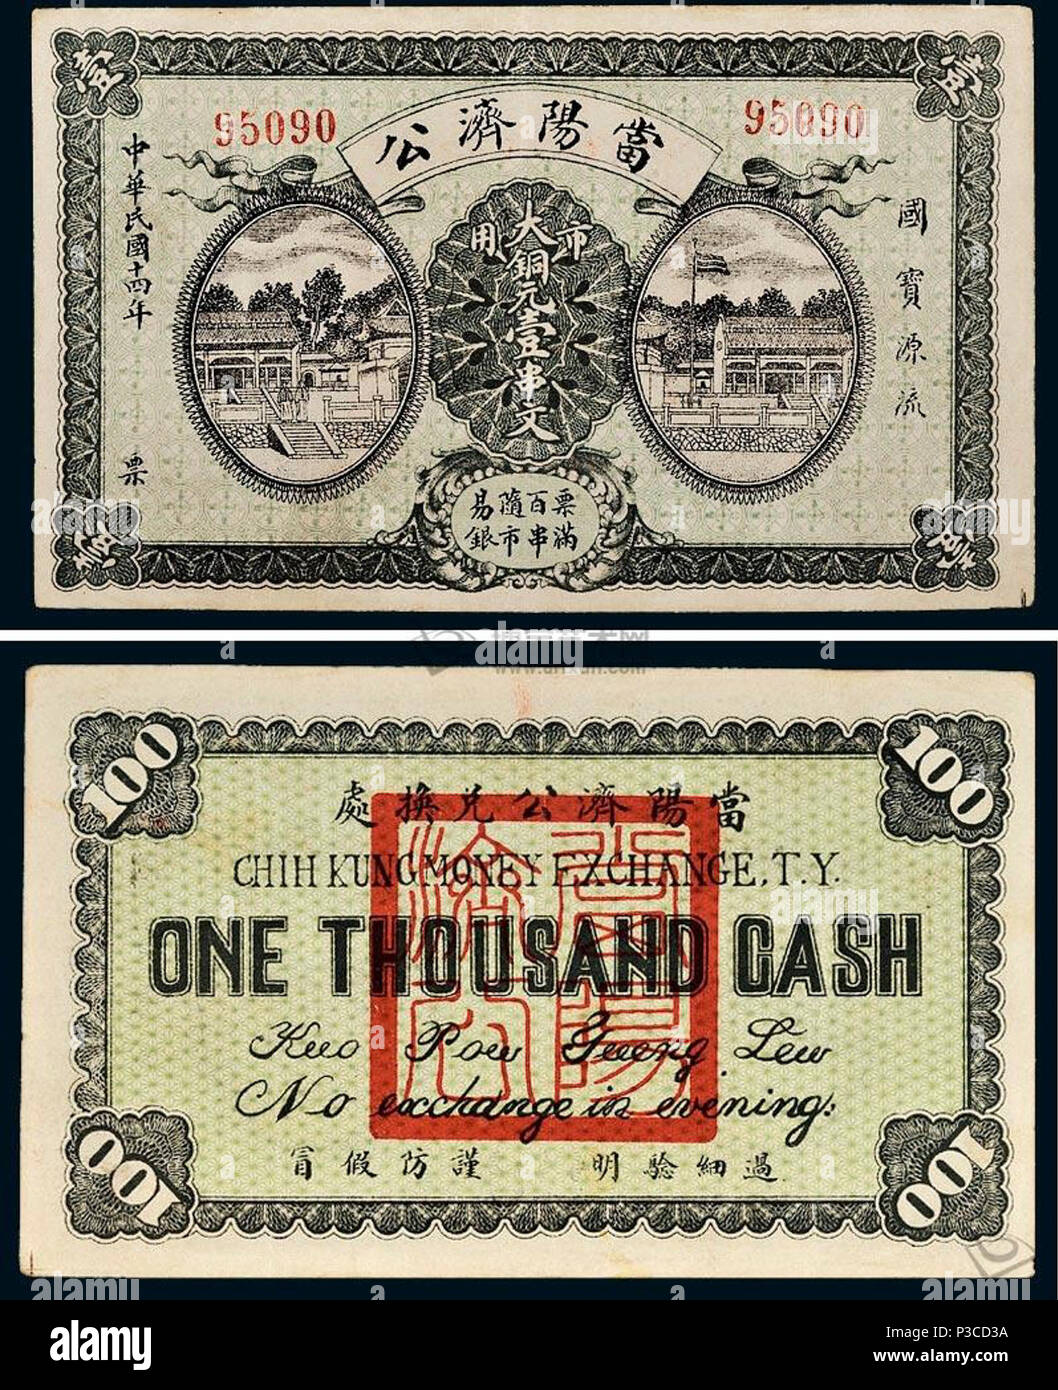 1 Chuàn or 1000 Cash - Chih Kung Money Exchange, T.Y. - Stock Image